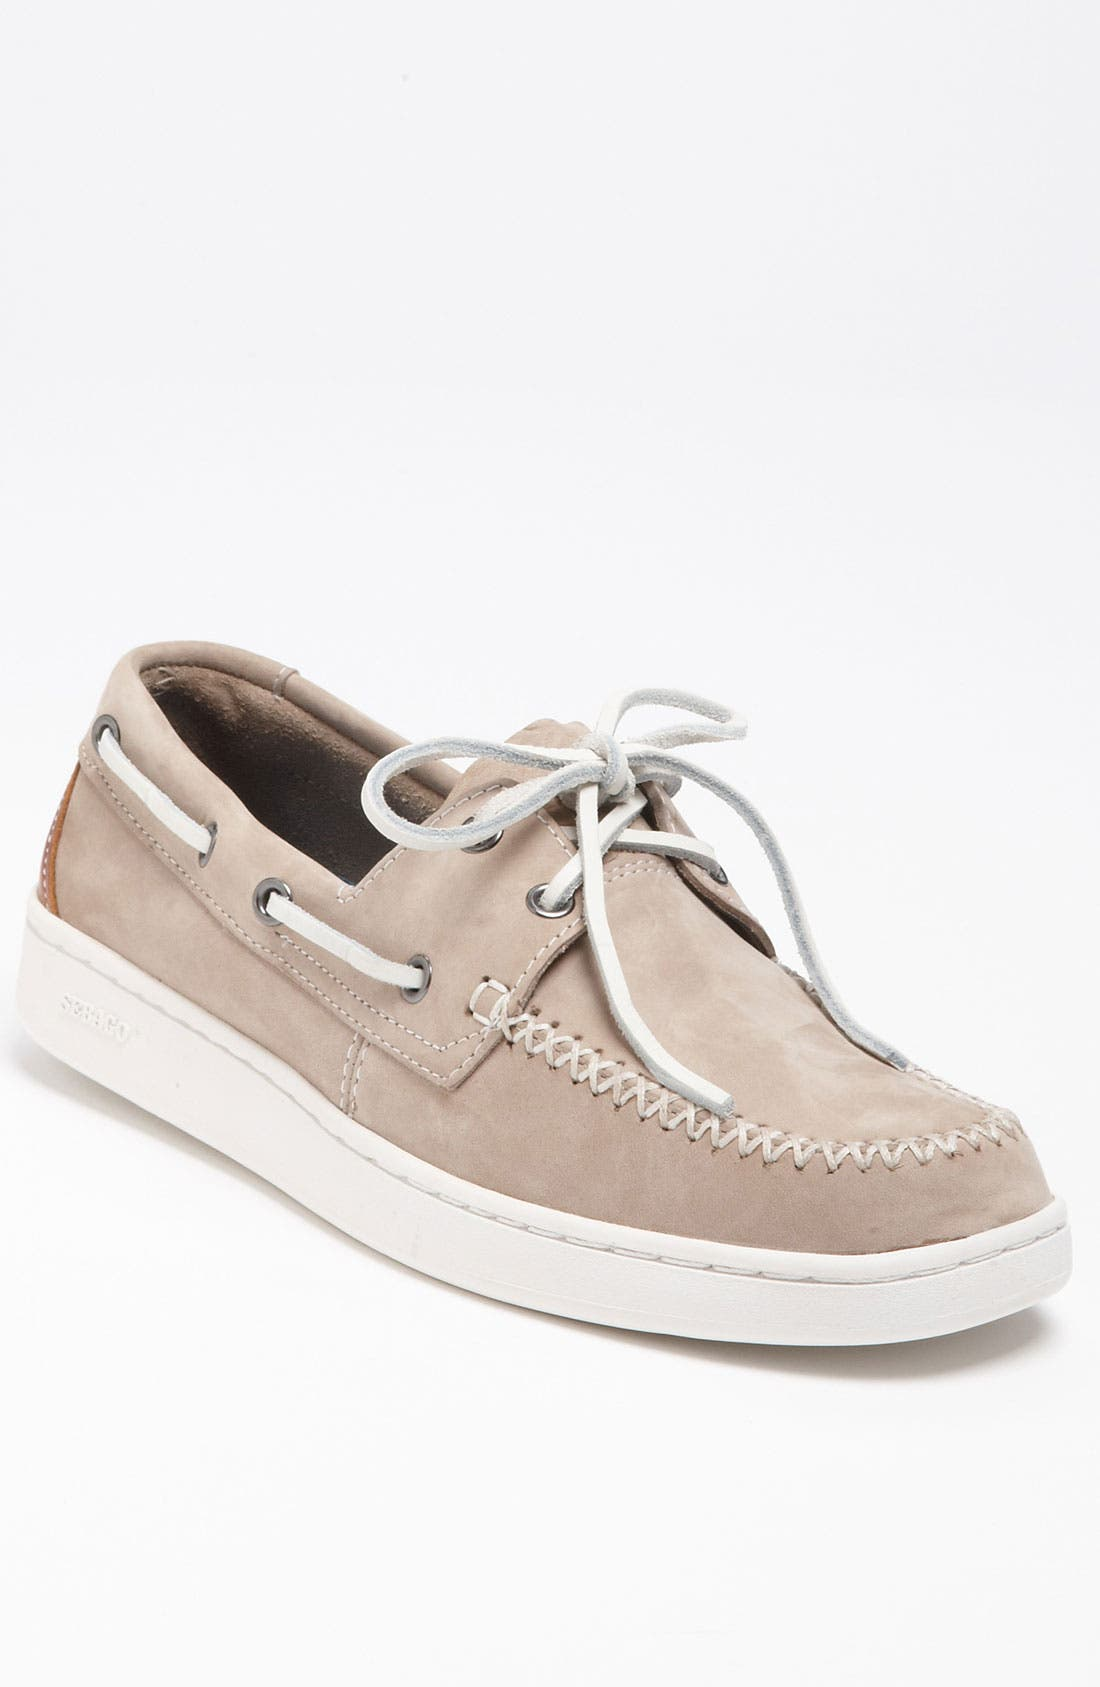 Main Image - Sebago 'Wentworth' Boat Shoe